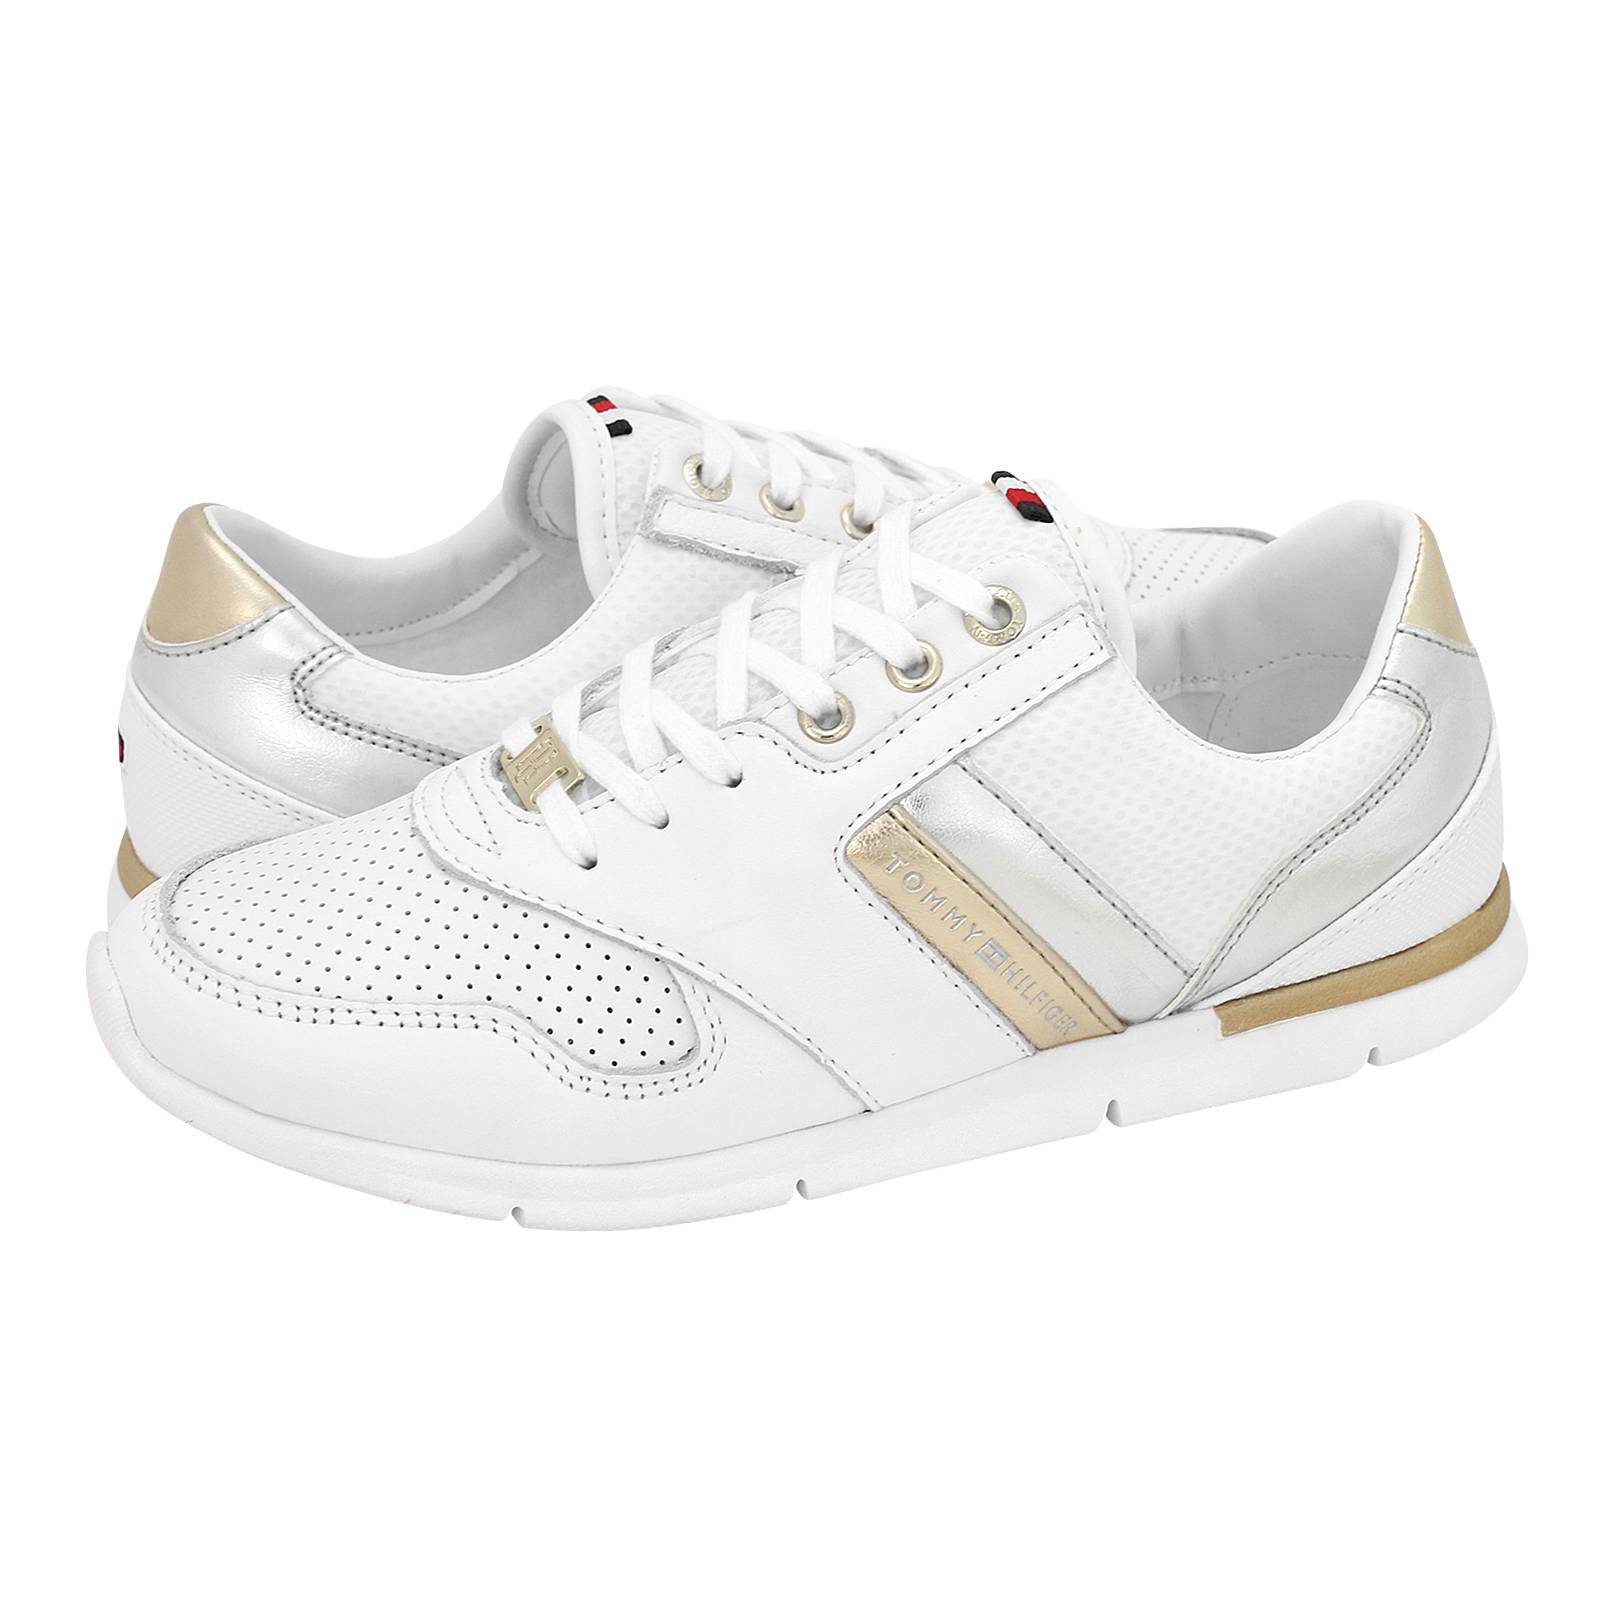 a8190622b34676 Light Weight Sneaker - Tommy Hilfiger Women s casual shoes made of ...